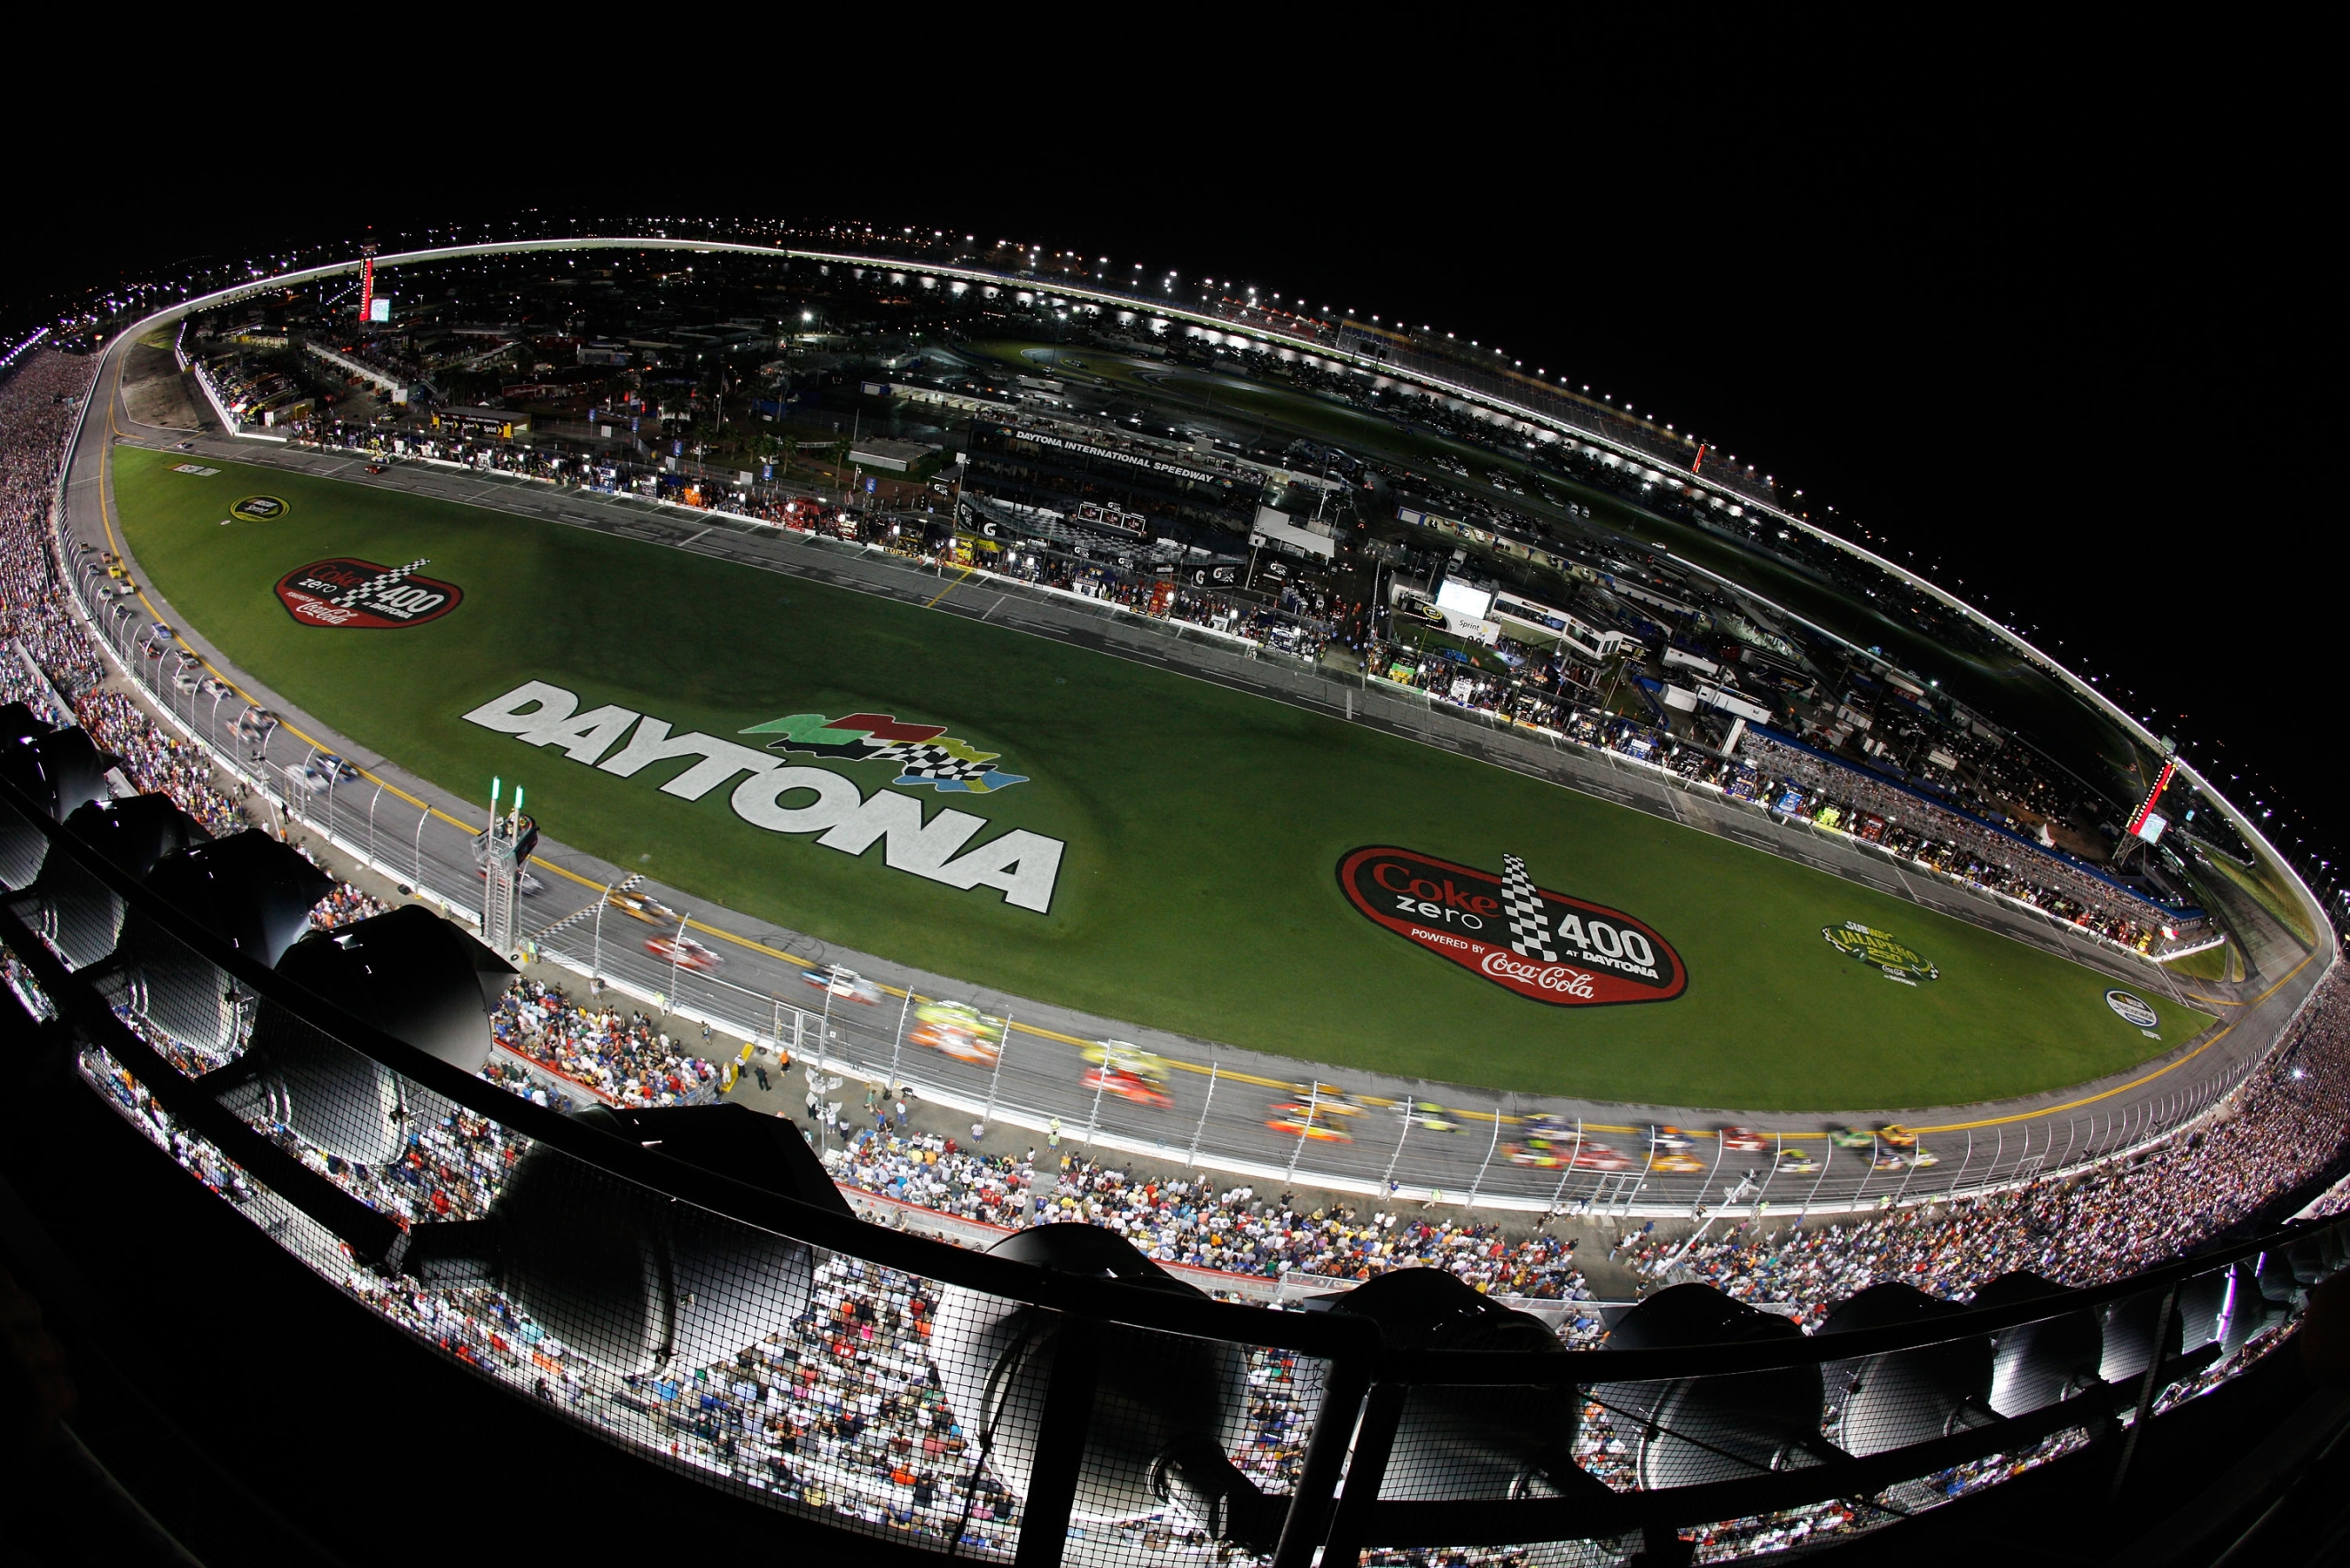 Nascar full hd wallpaper and background image 2650x1768 id237668 sports nascar wallpaper voltagebd Image collections